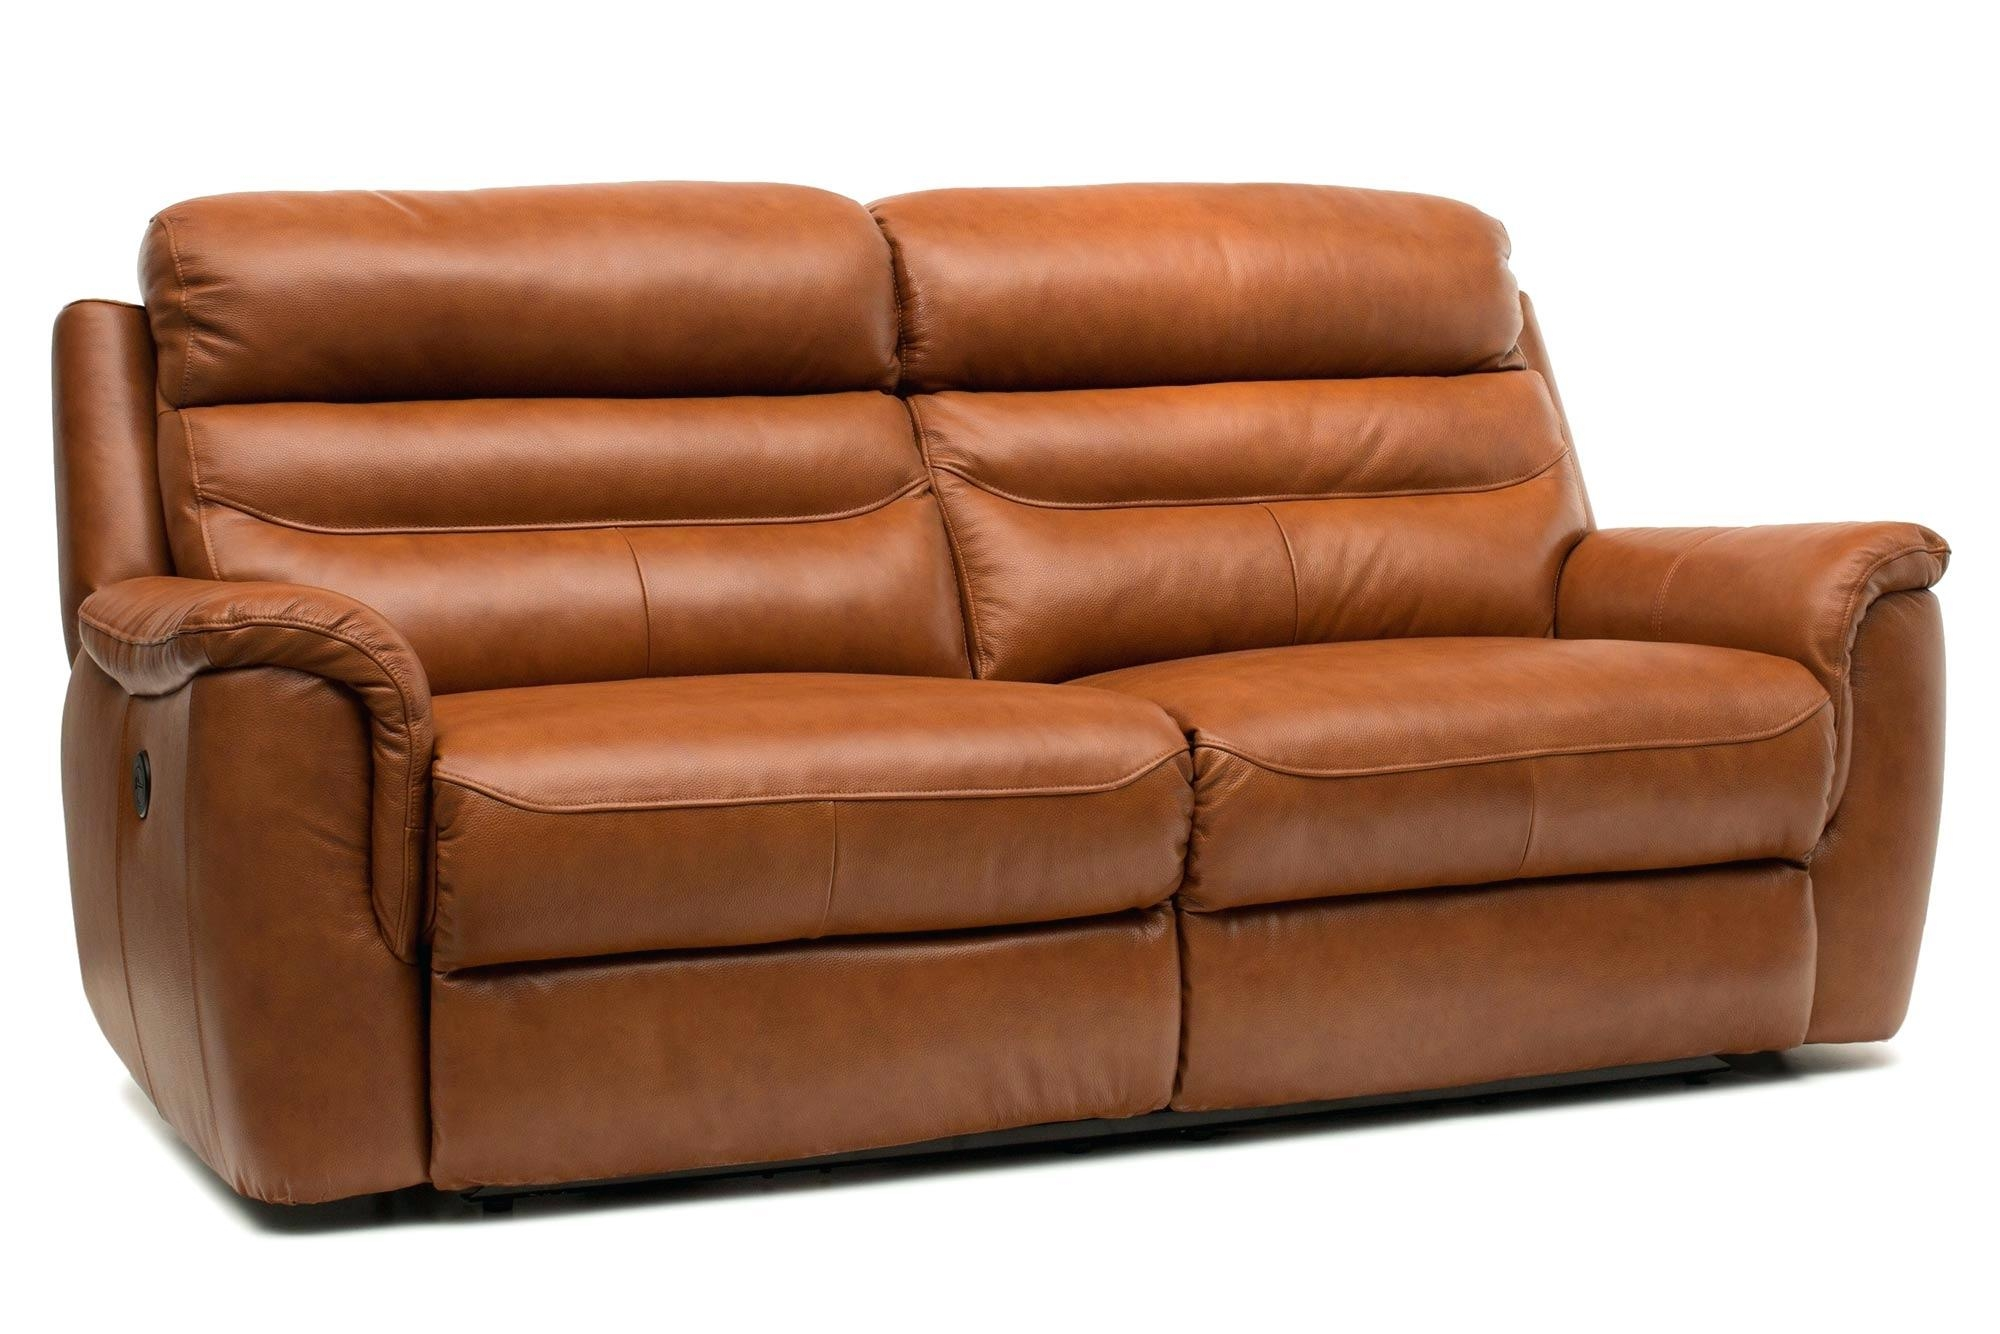 leather fabric mix sofas uk office sofa furniture singapore 21 best ideas and material